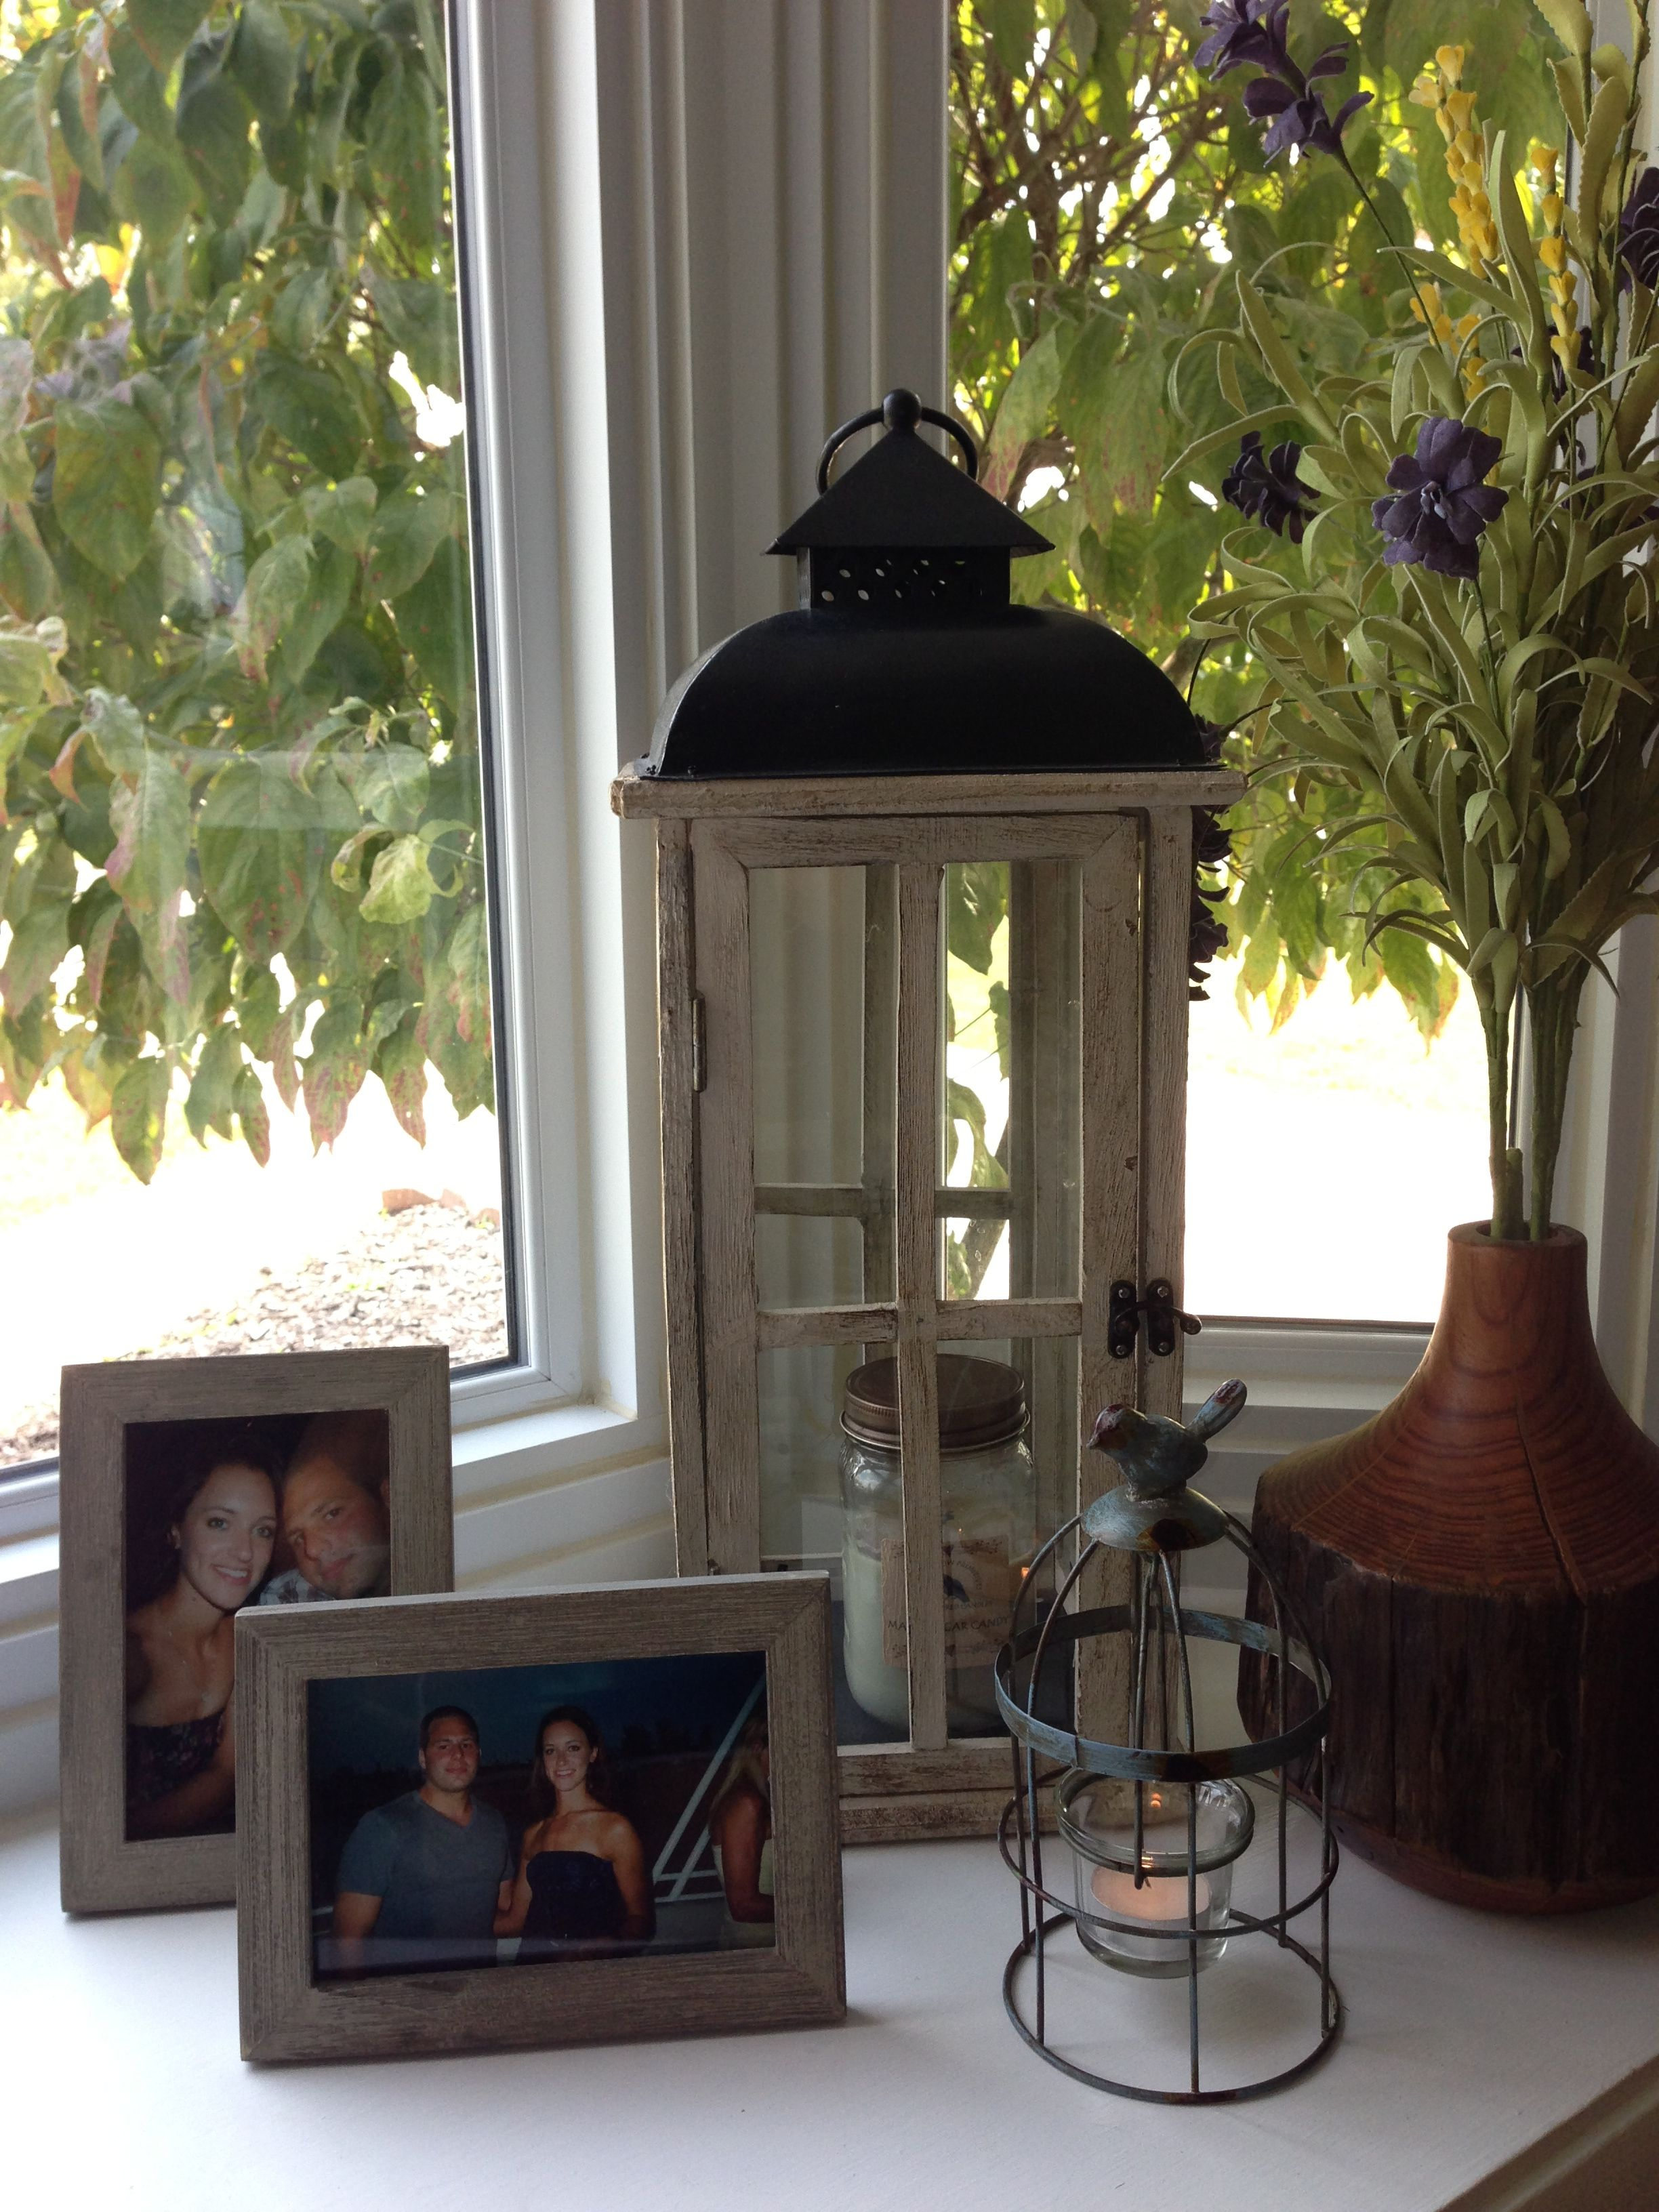 Decoration In My Bay Window With Images Bay Window Living